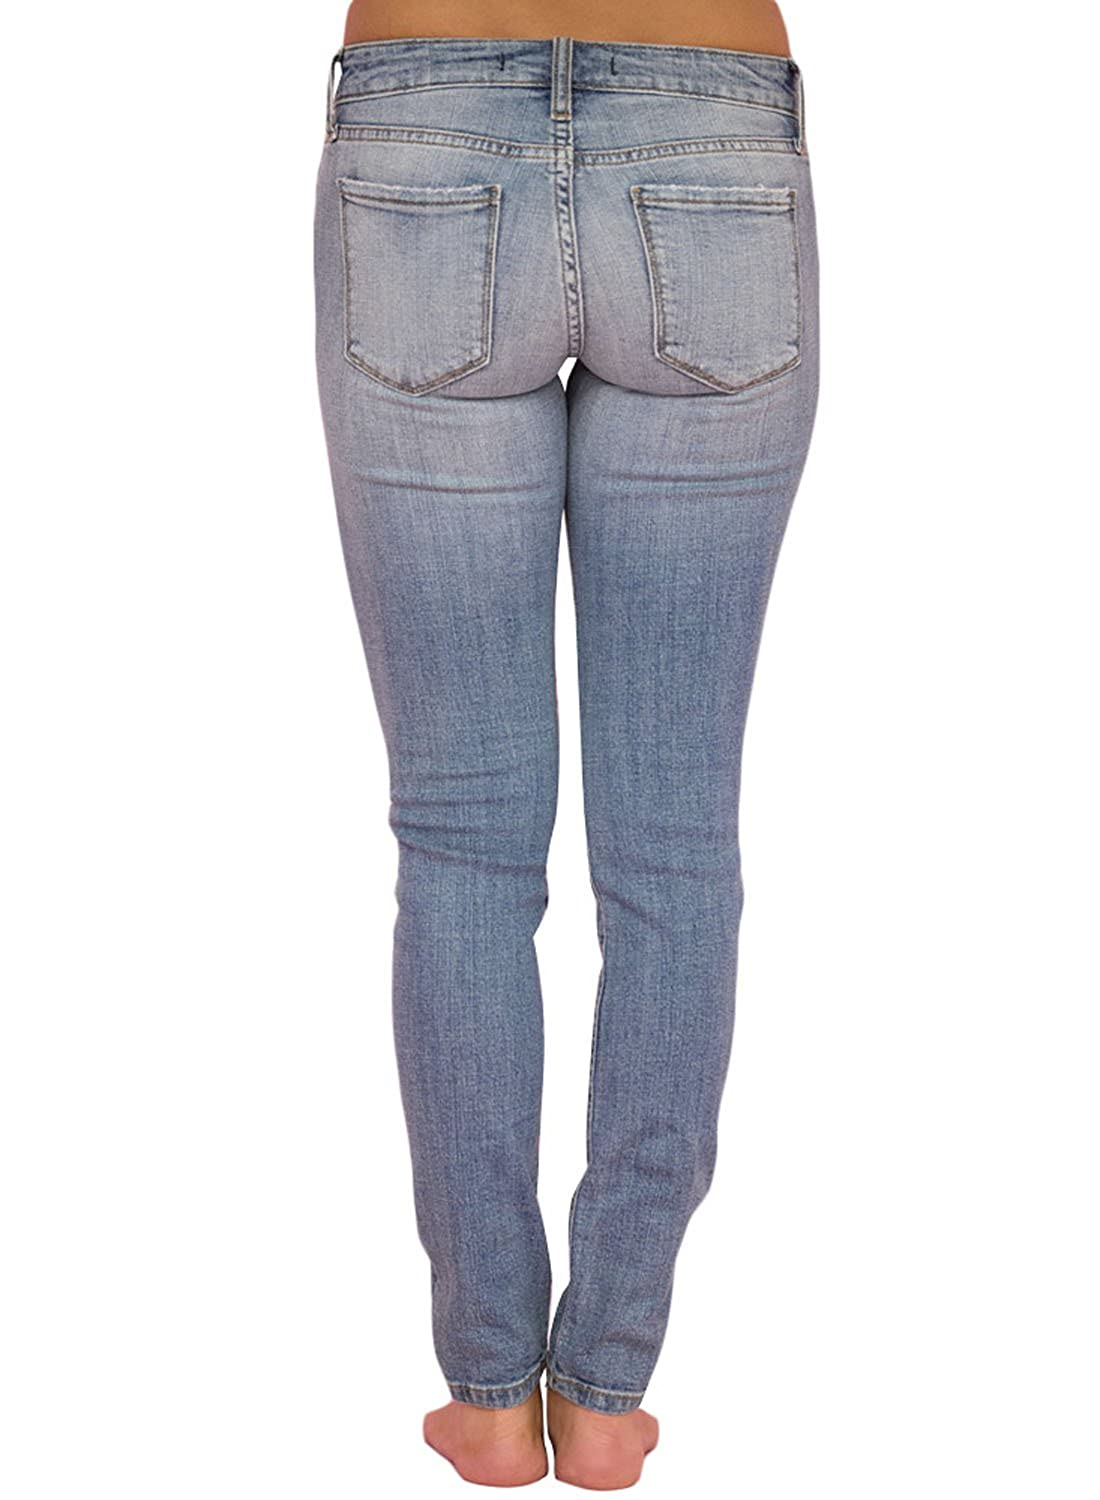 ba74001fe02f0 Sidefeel Women Hight Waist Ripped Denim Ankle Length Skinny Jeans HX78691-P  Christmas Supplies